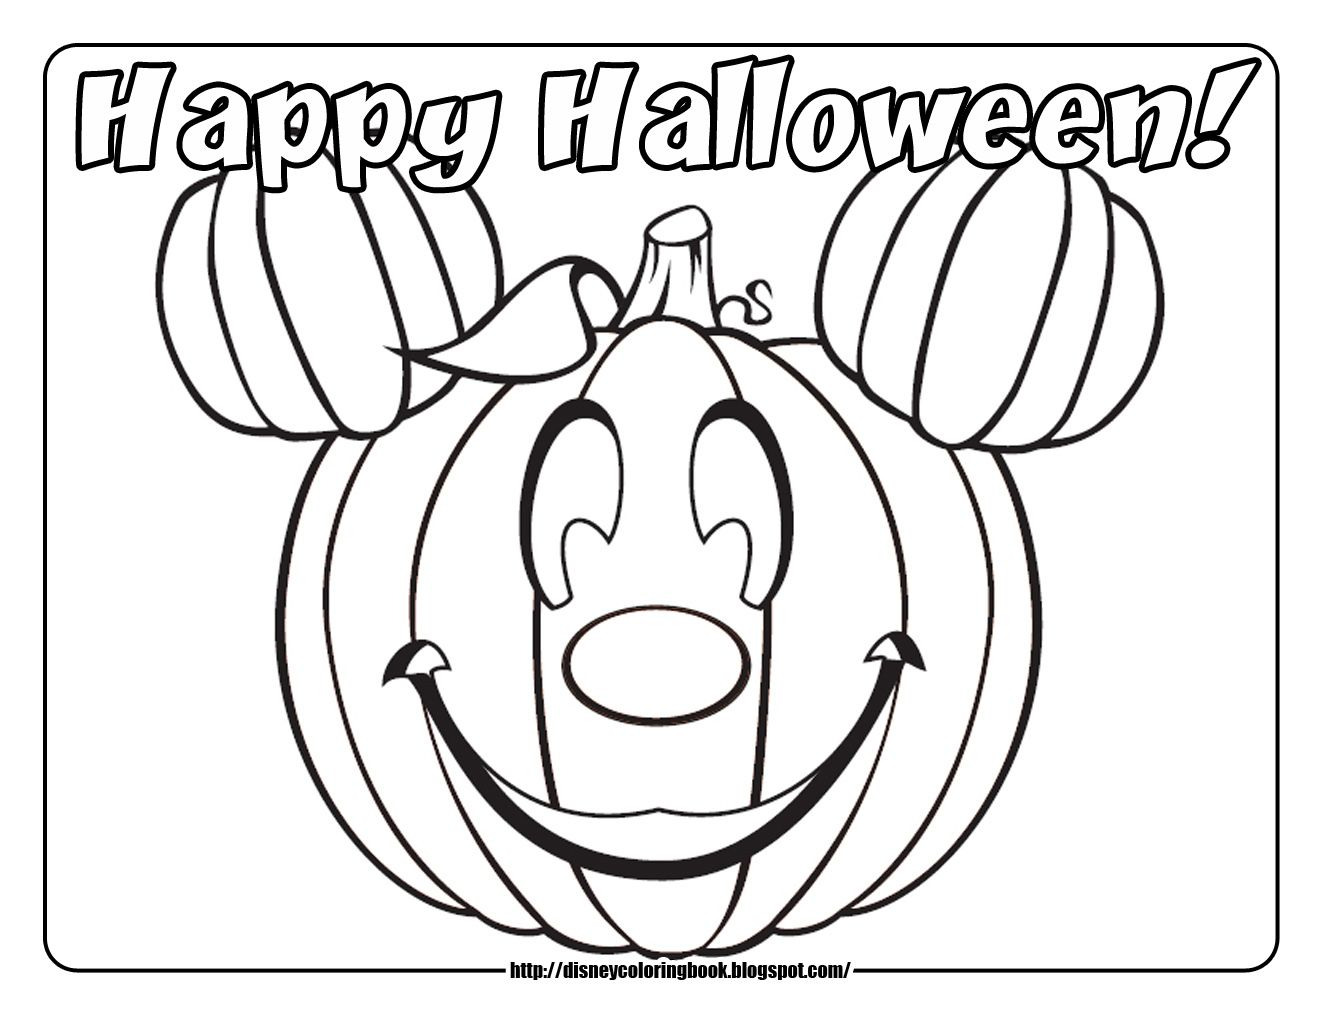 disneyland coloring pages - Google Search | Style | Pinterest ...